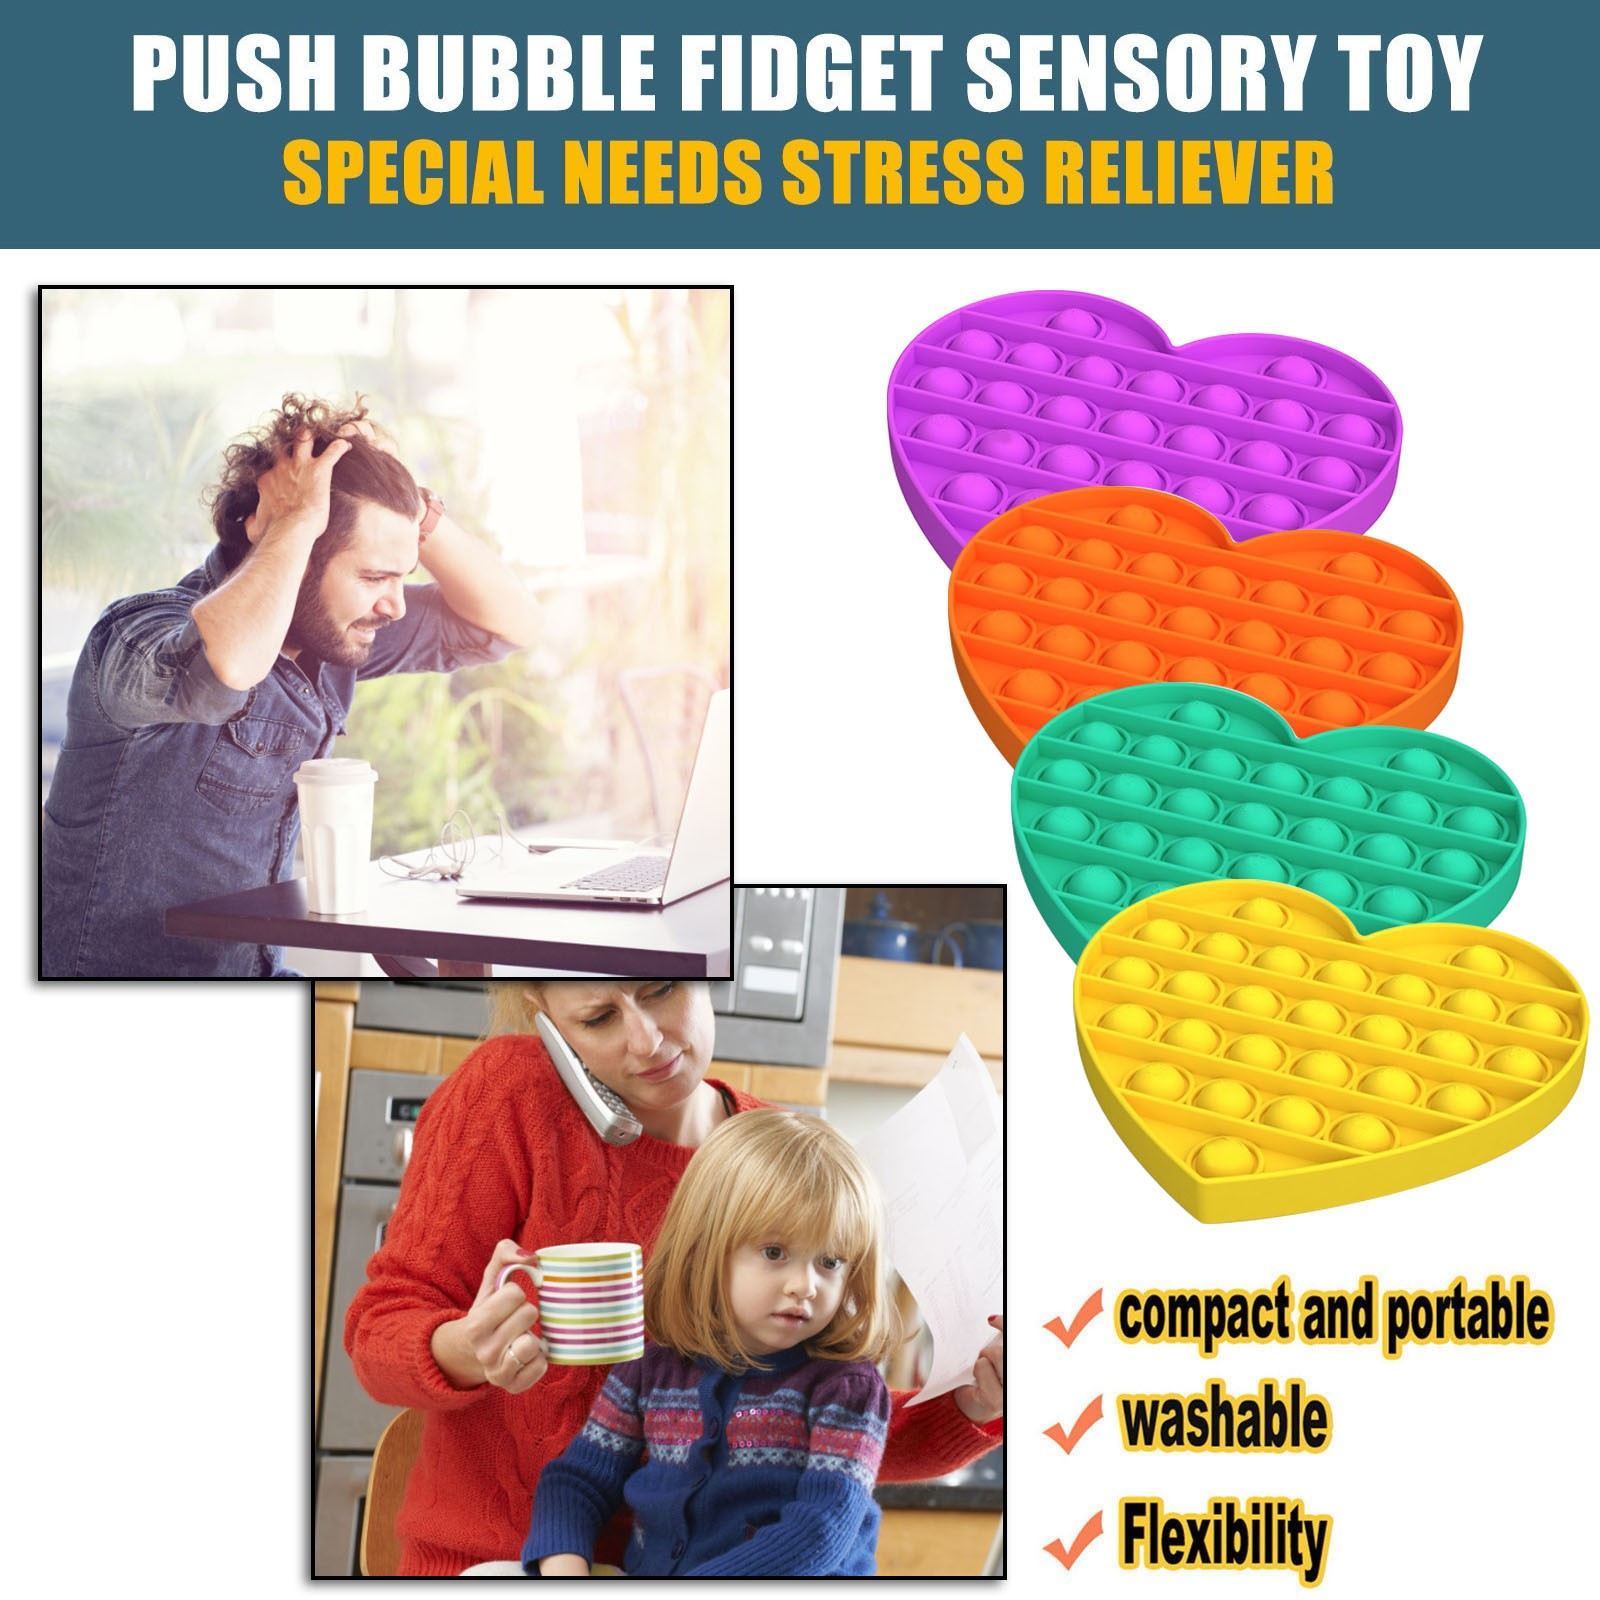 Fidget-Toys Needs-Stress Poppit Special Simple Dimple Love-Push Sensory-Toy Reliever img3